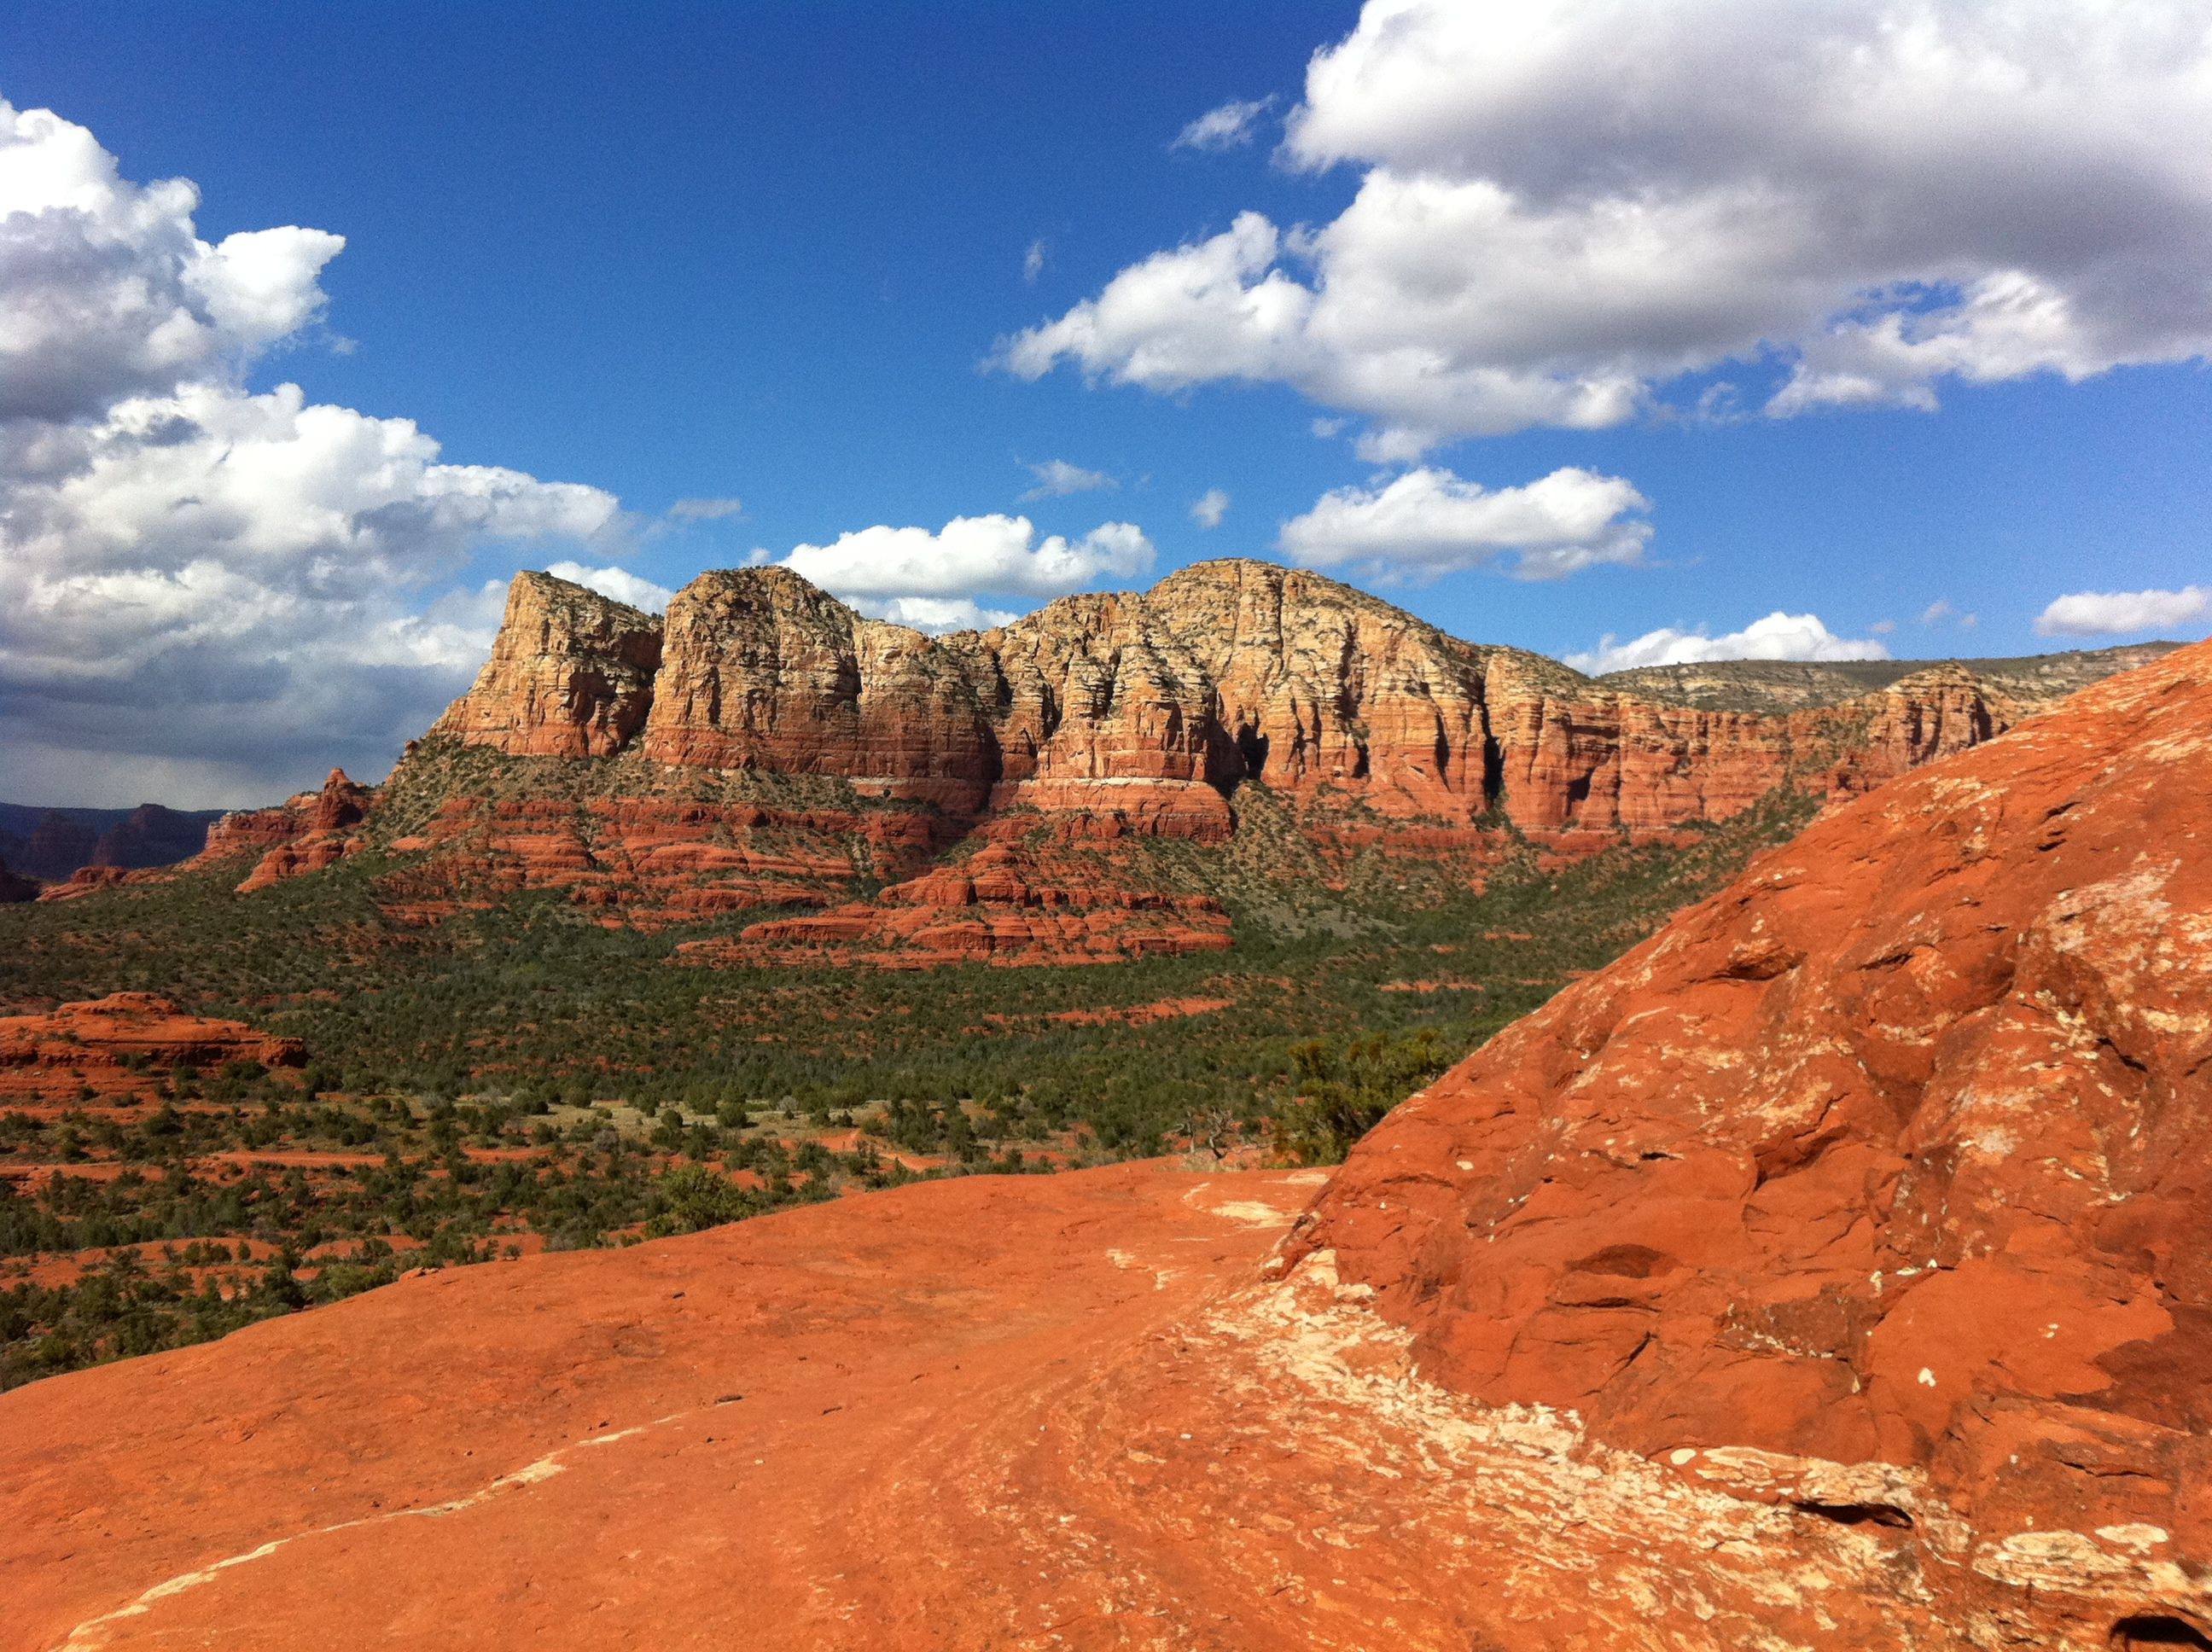 Origin Theories About Vortexes in Sedona, Arizona